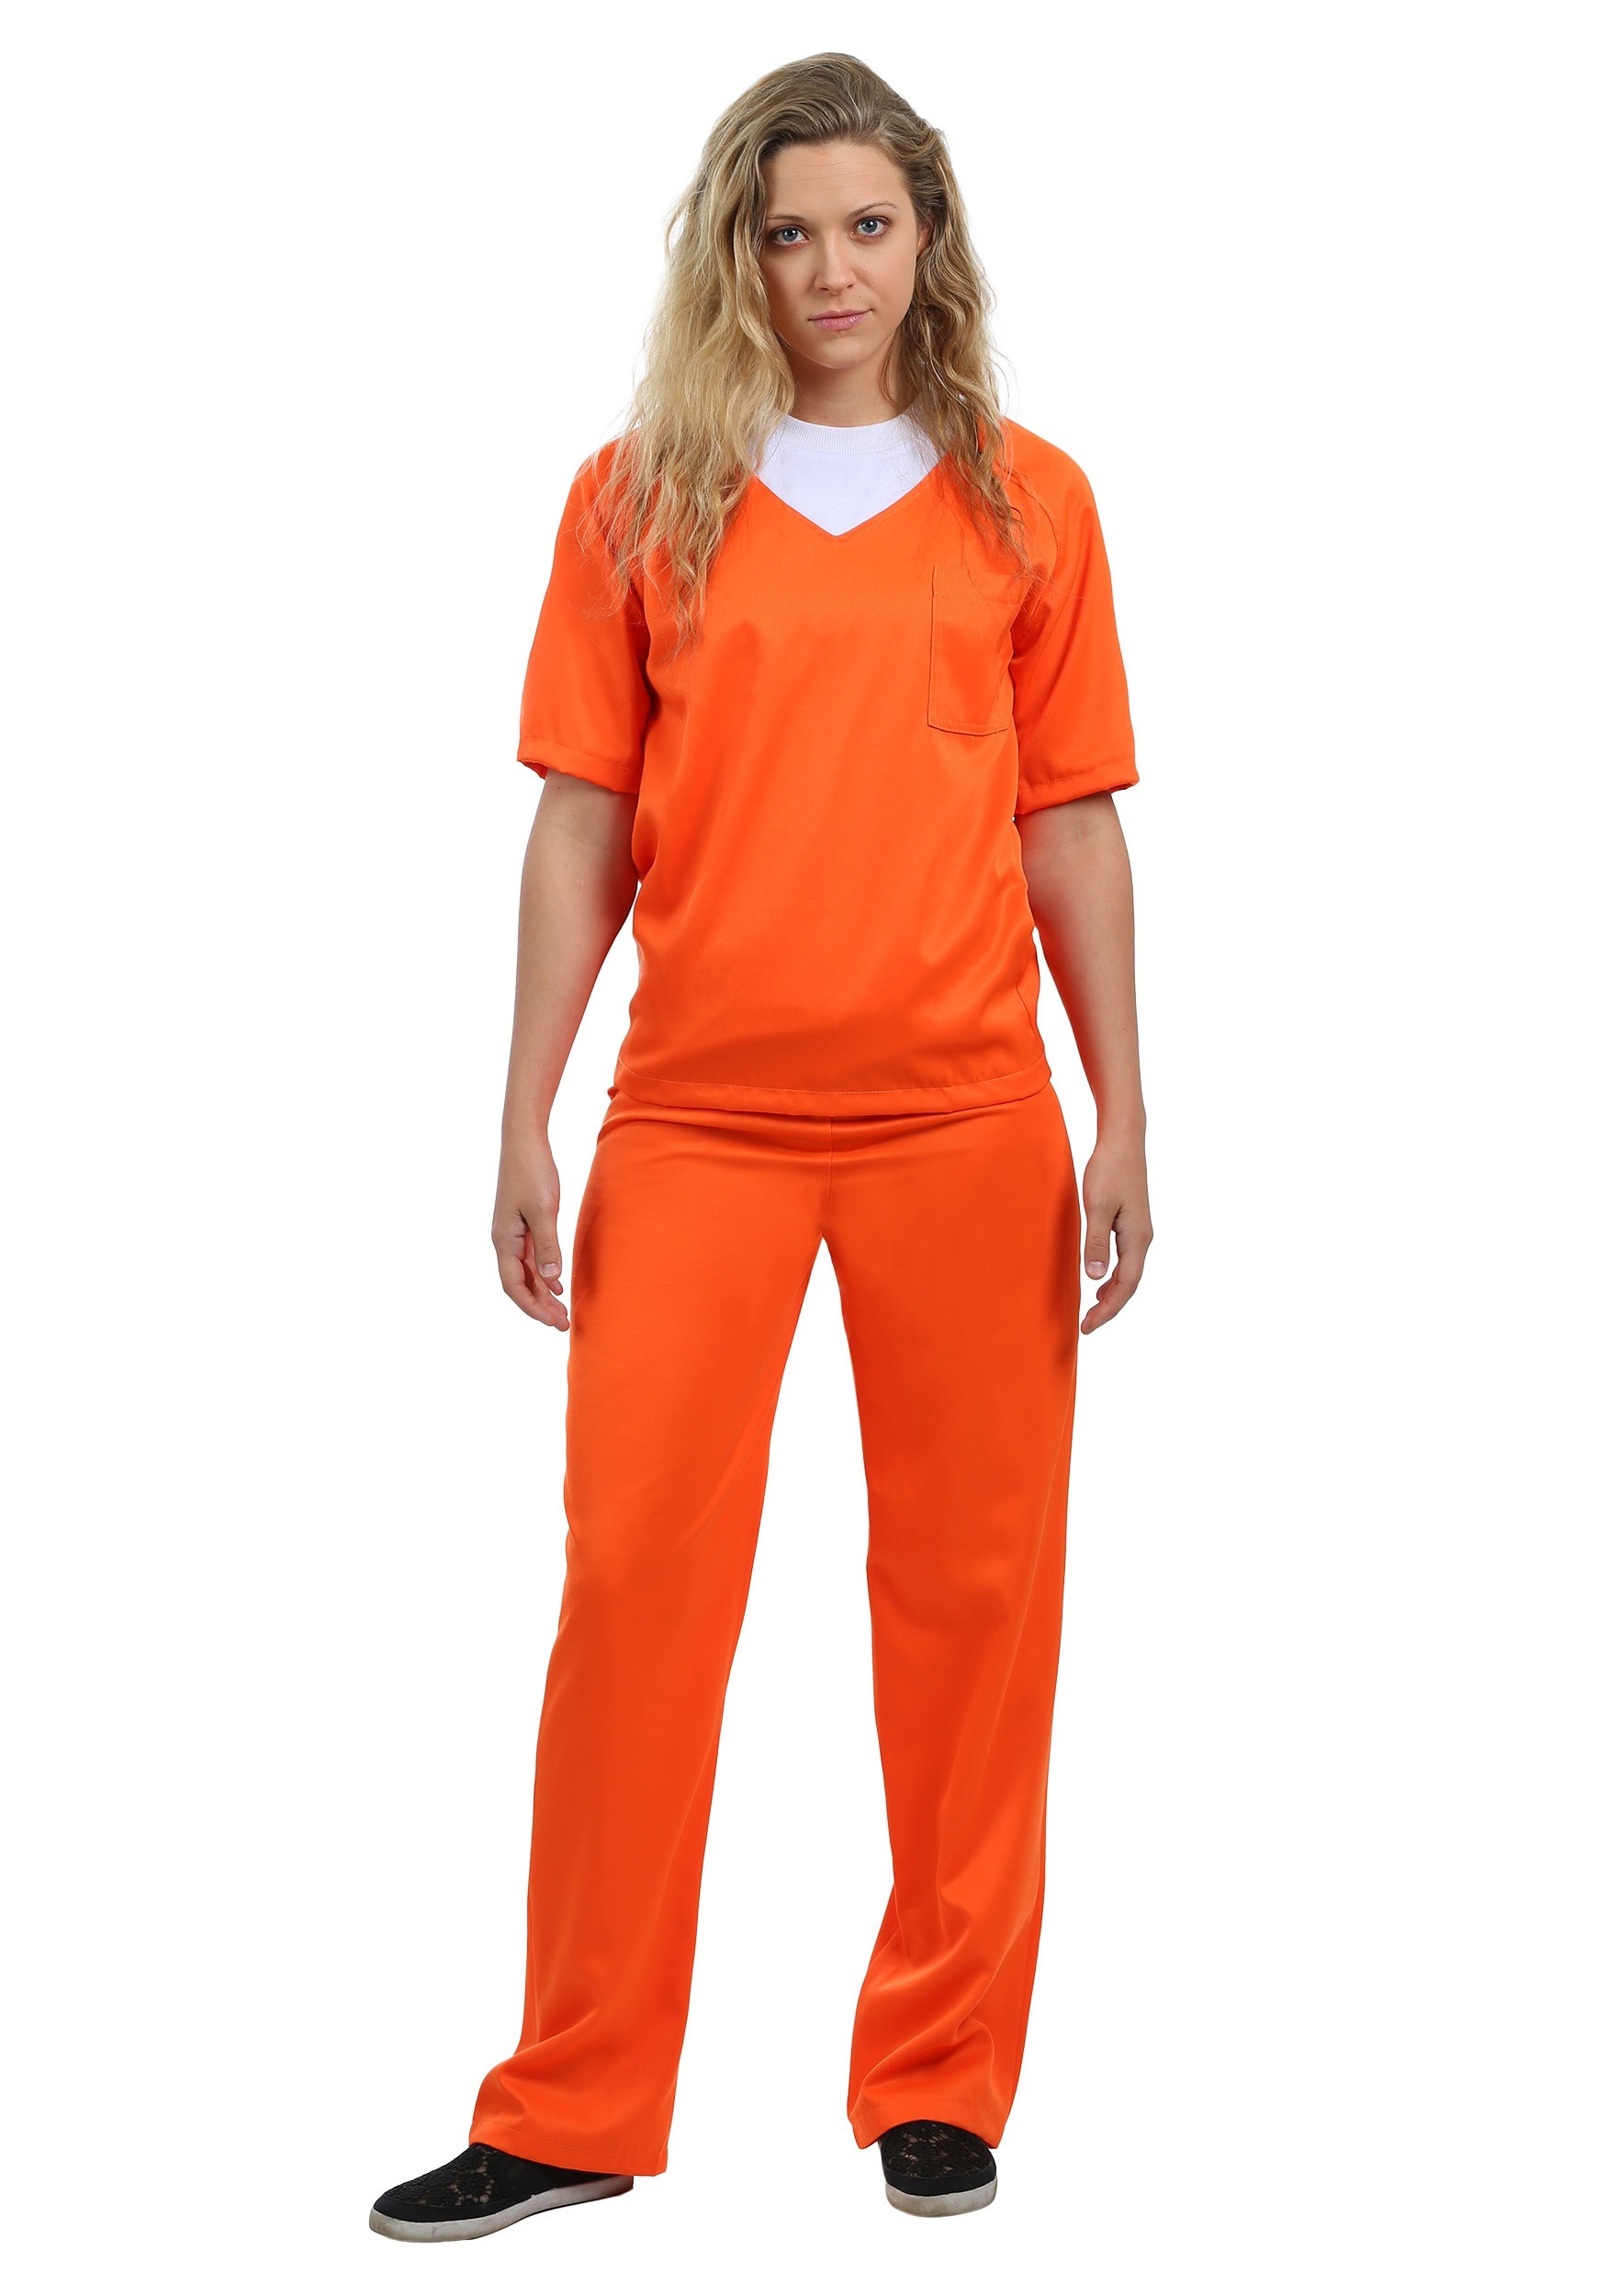 sc 1 st  Halloween Costumes : womens orange prison jumpsuit costume  - Germanpascual.Com